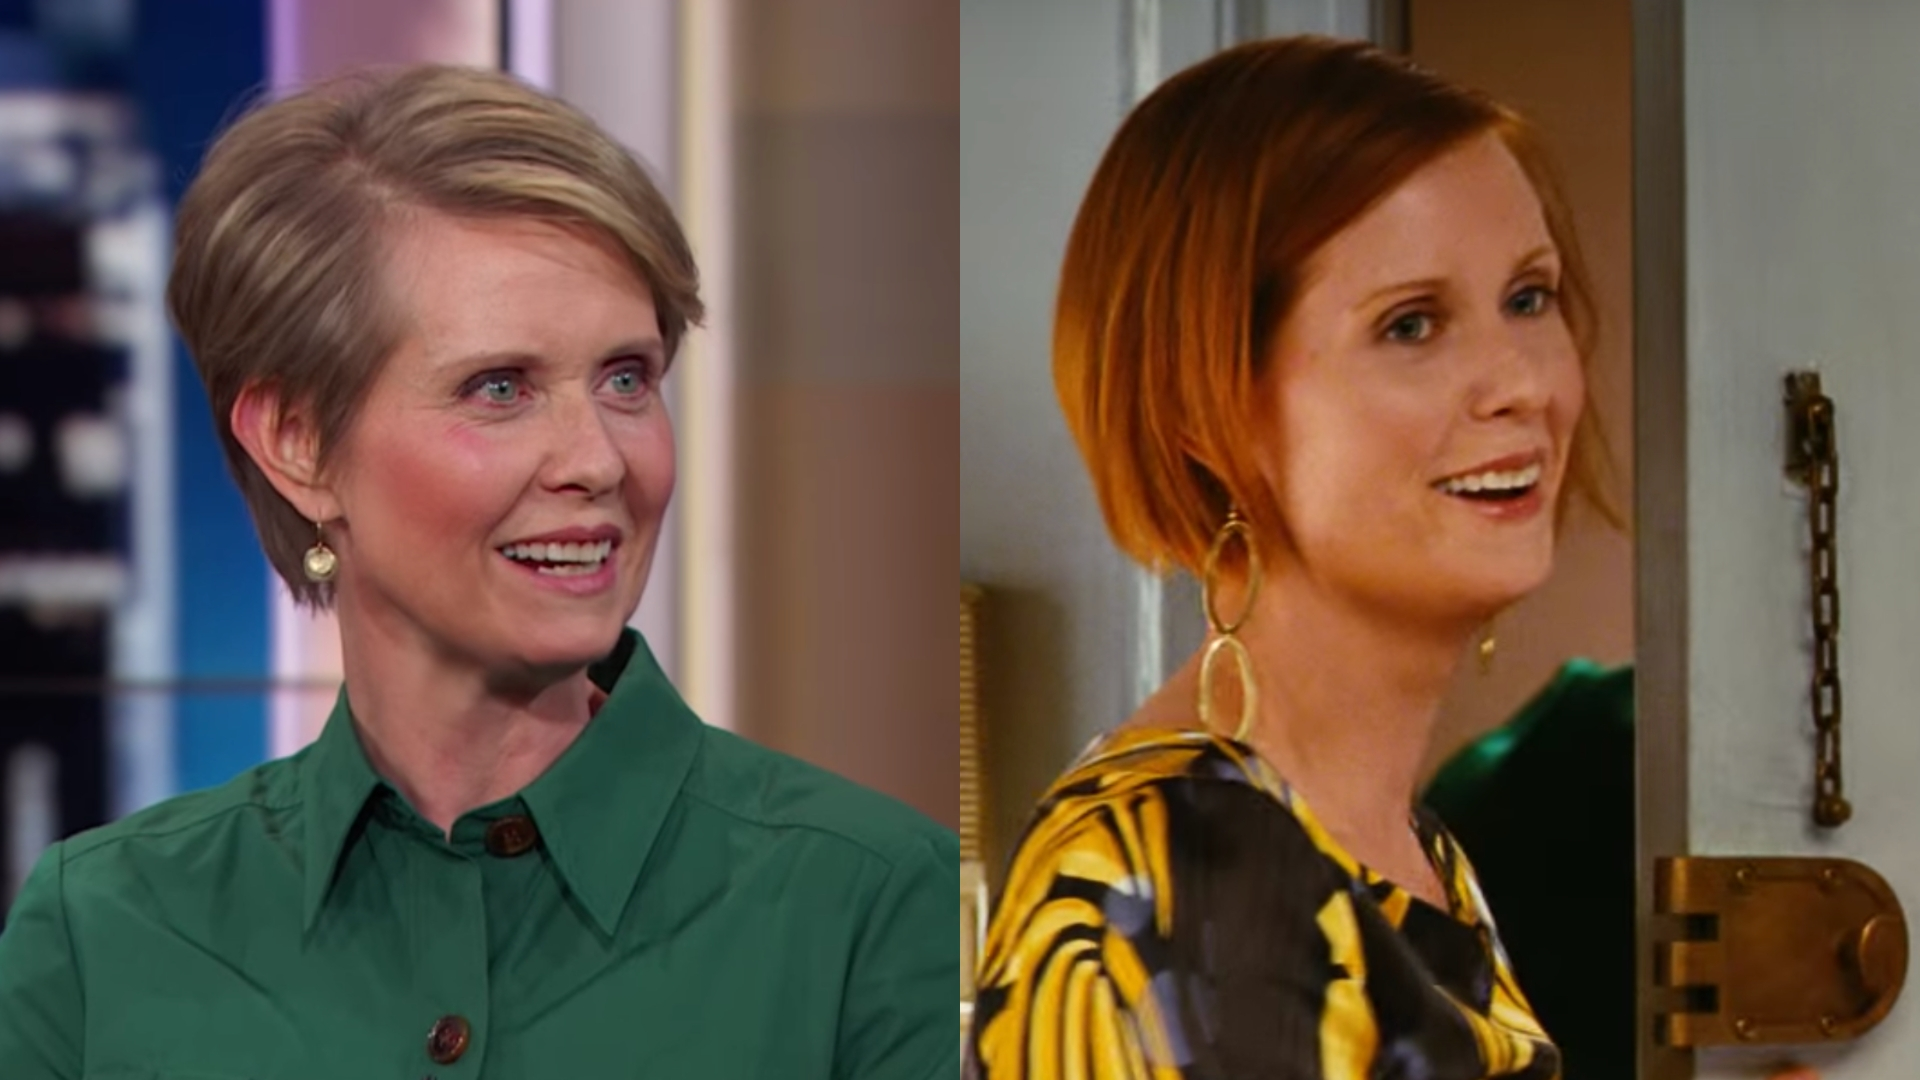 Cynthia Nixon calls out 'Sex and the City' white feminism issues